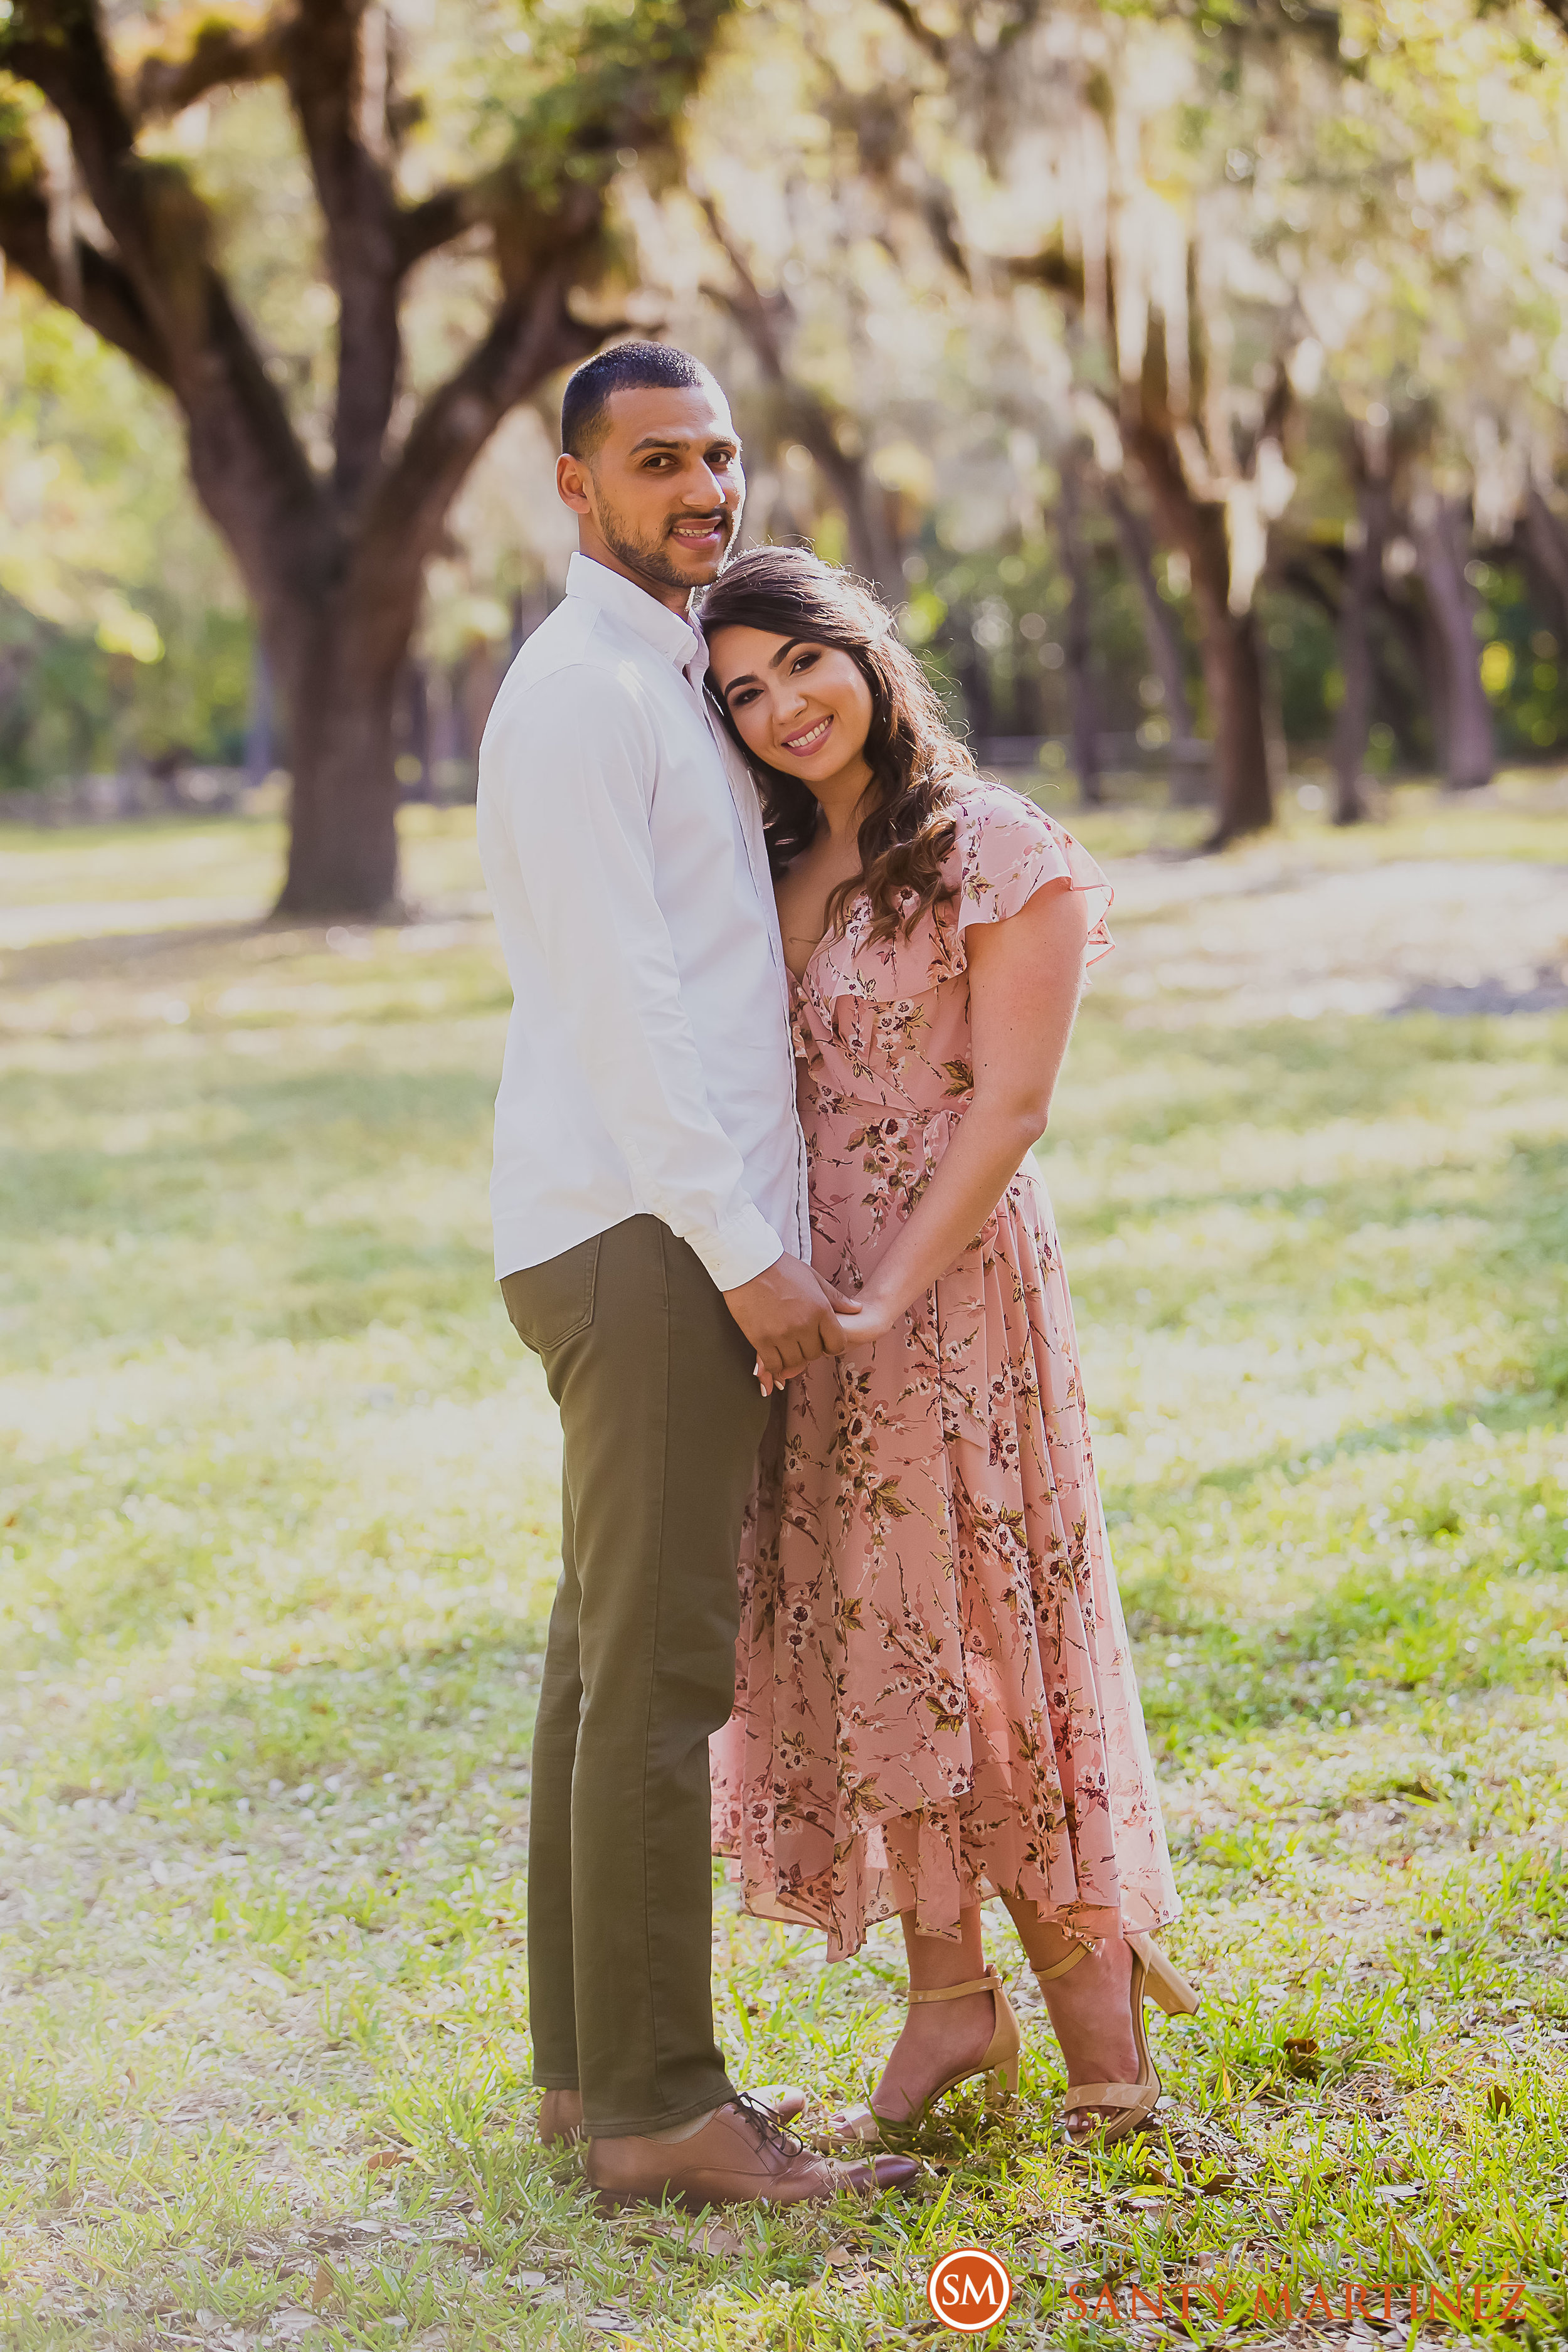 Engagement Session Matheson Hammock Park - Photography by Santy Martinez.jpg